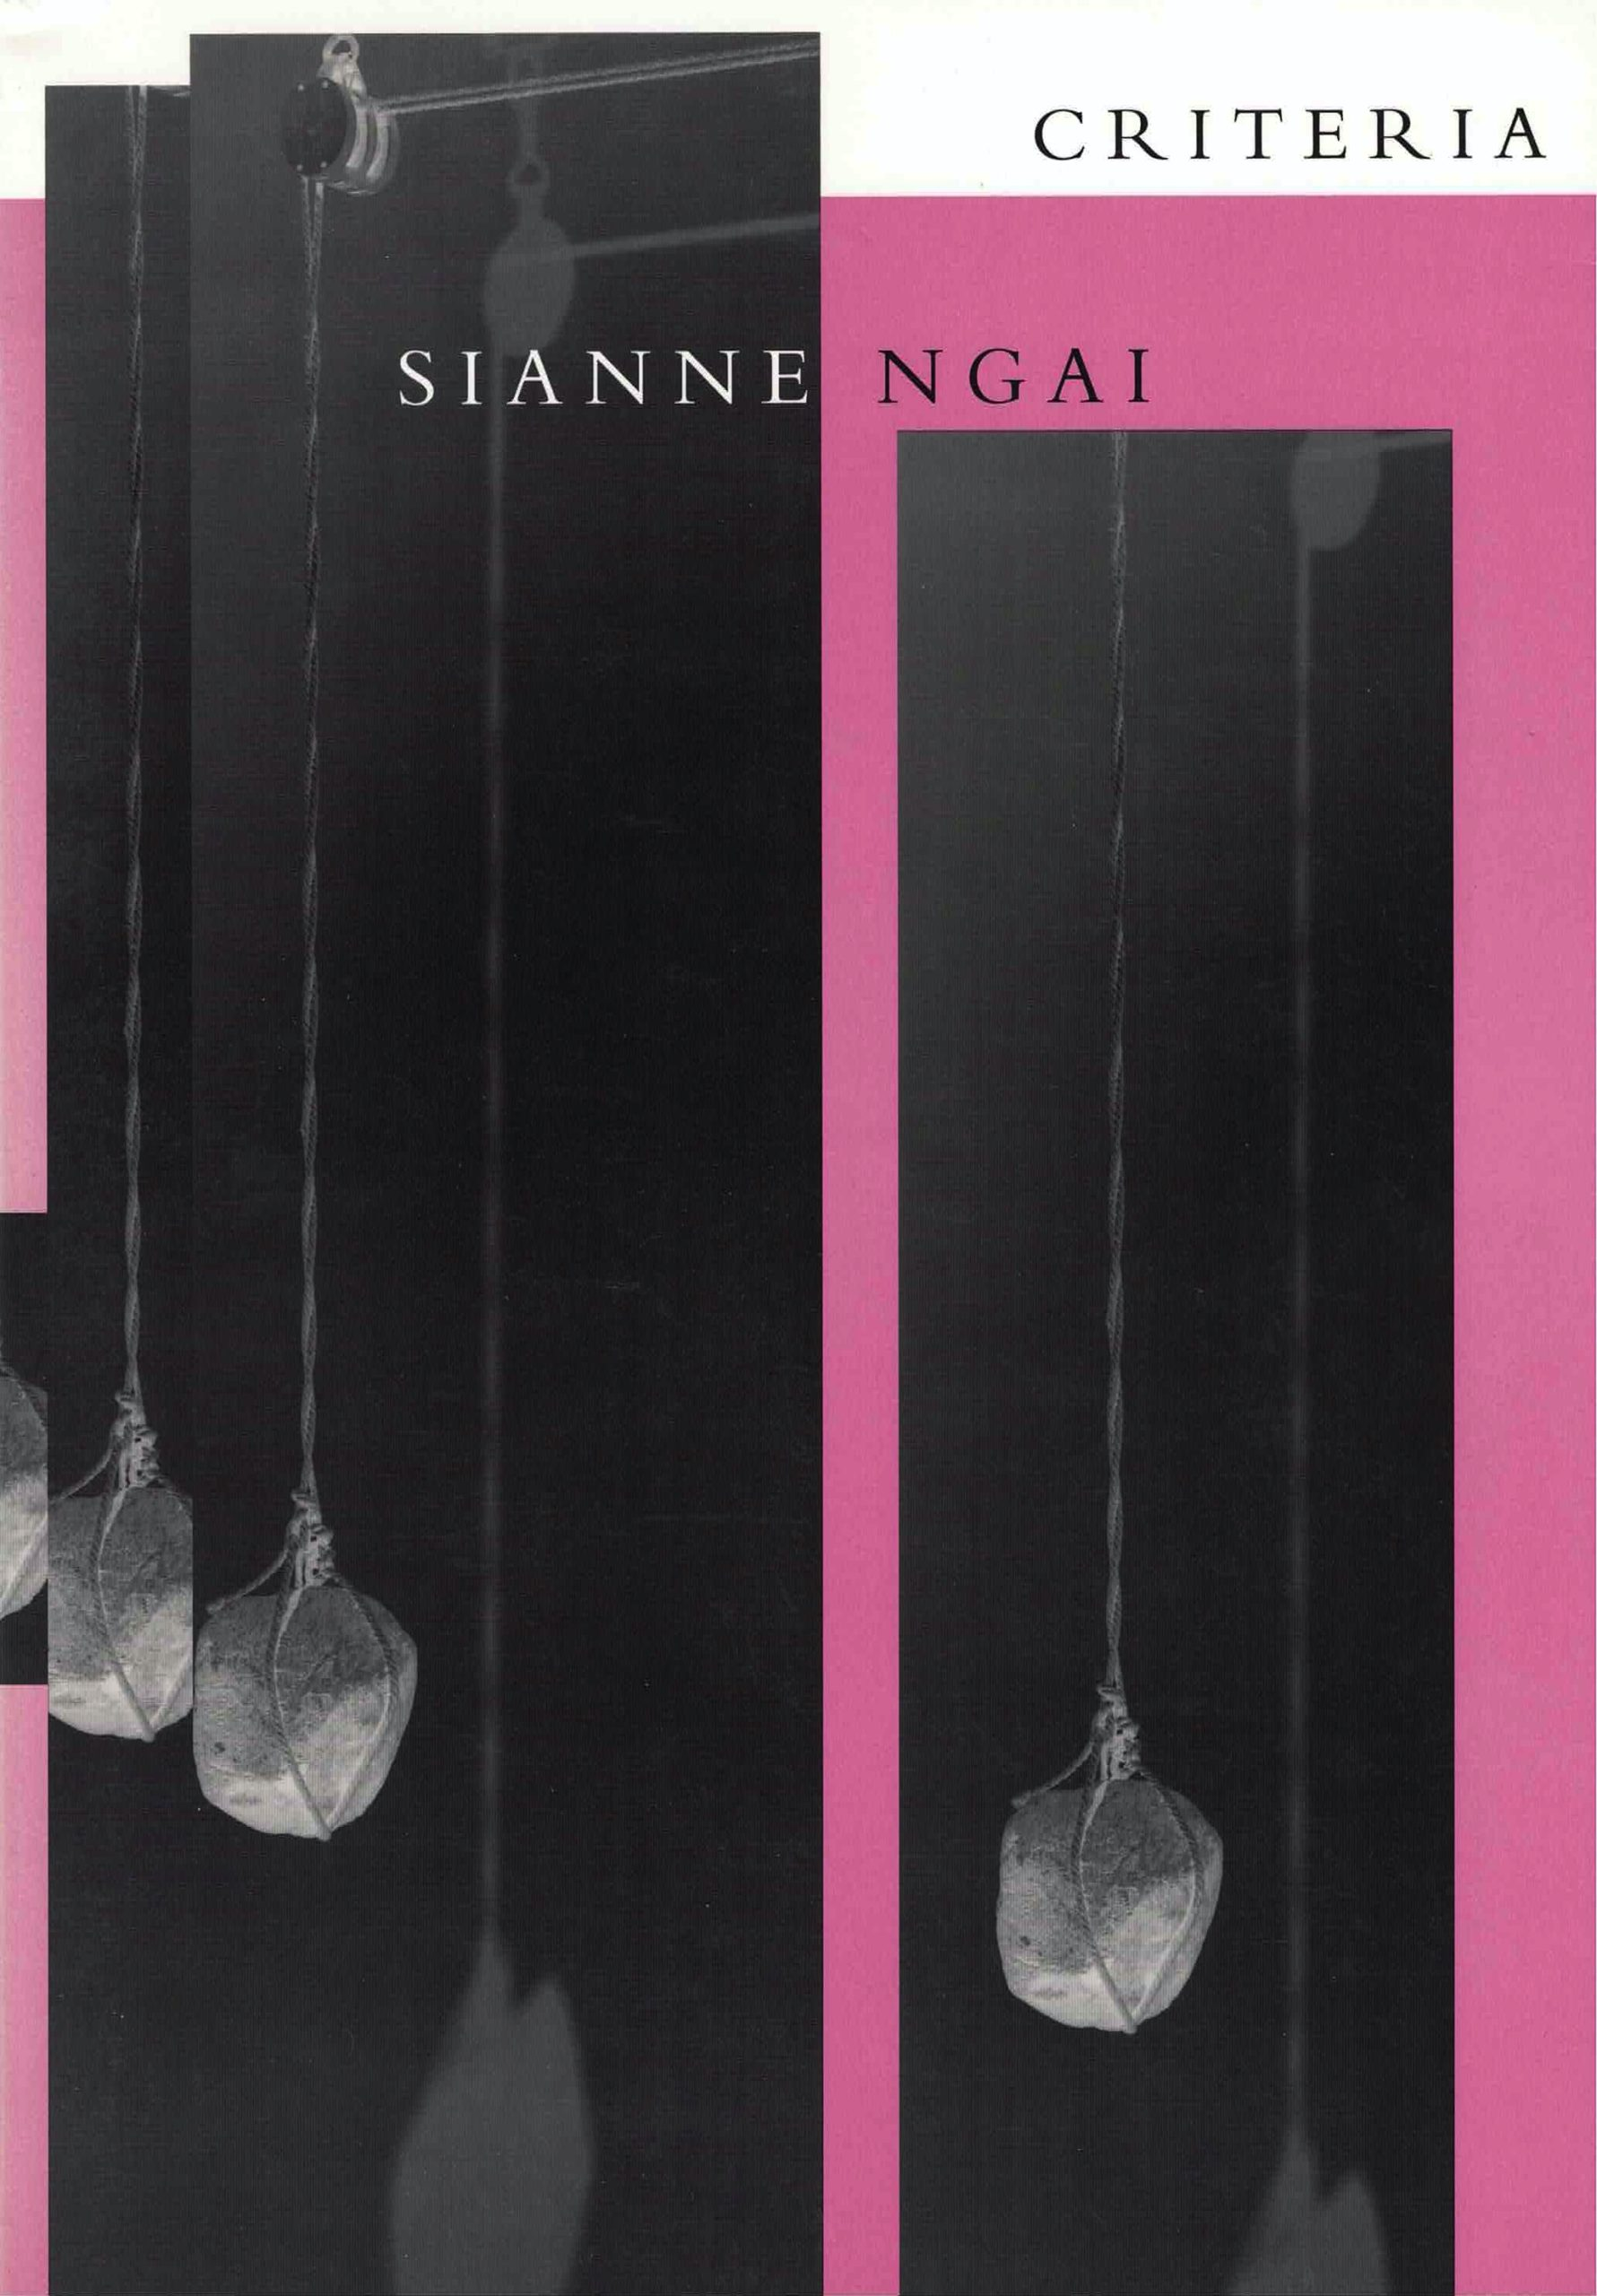 cover of Citeria by Sianne Ngai; three repeated narrow vertical negative photos layered on top of each other of stone tied to a pulley system casting it shadow on the wall, photos are on a pink background